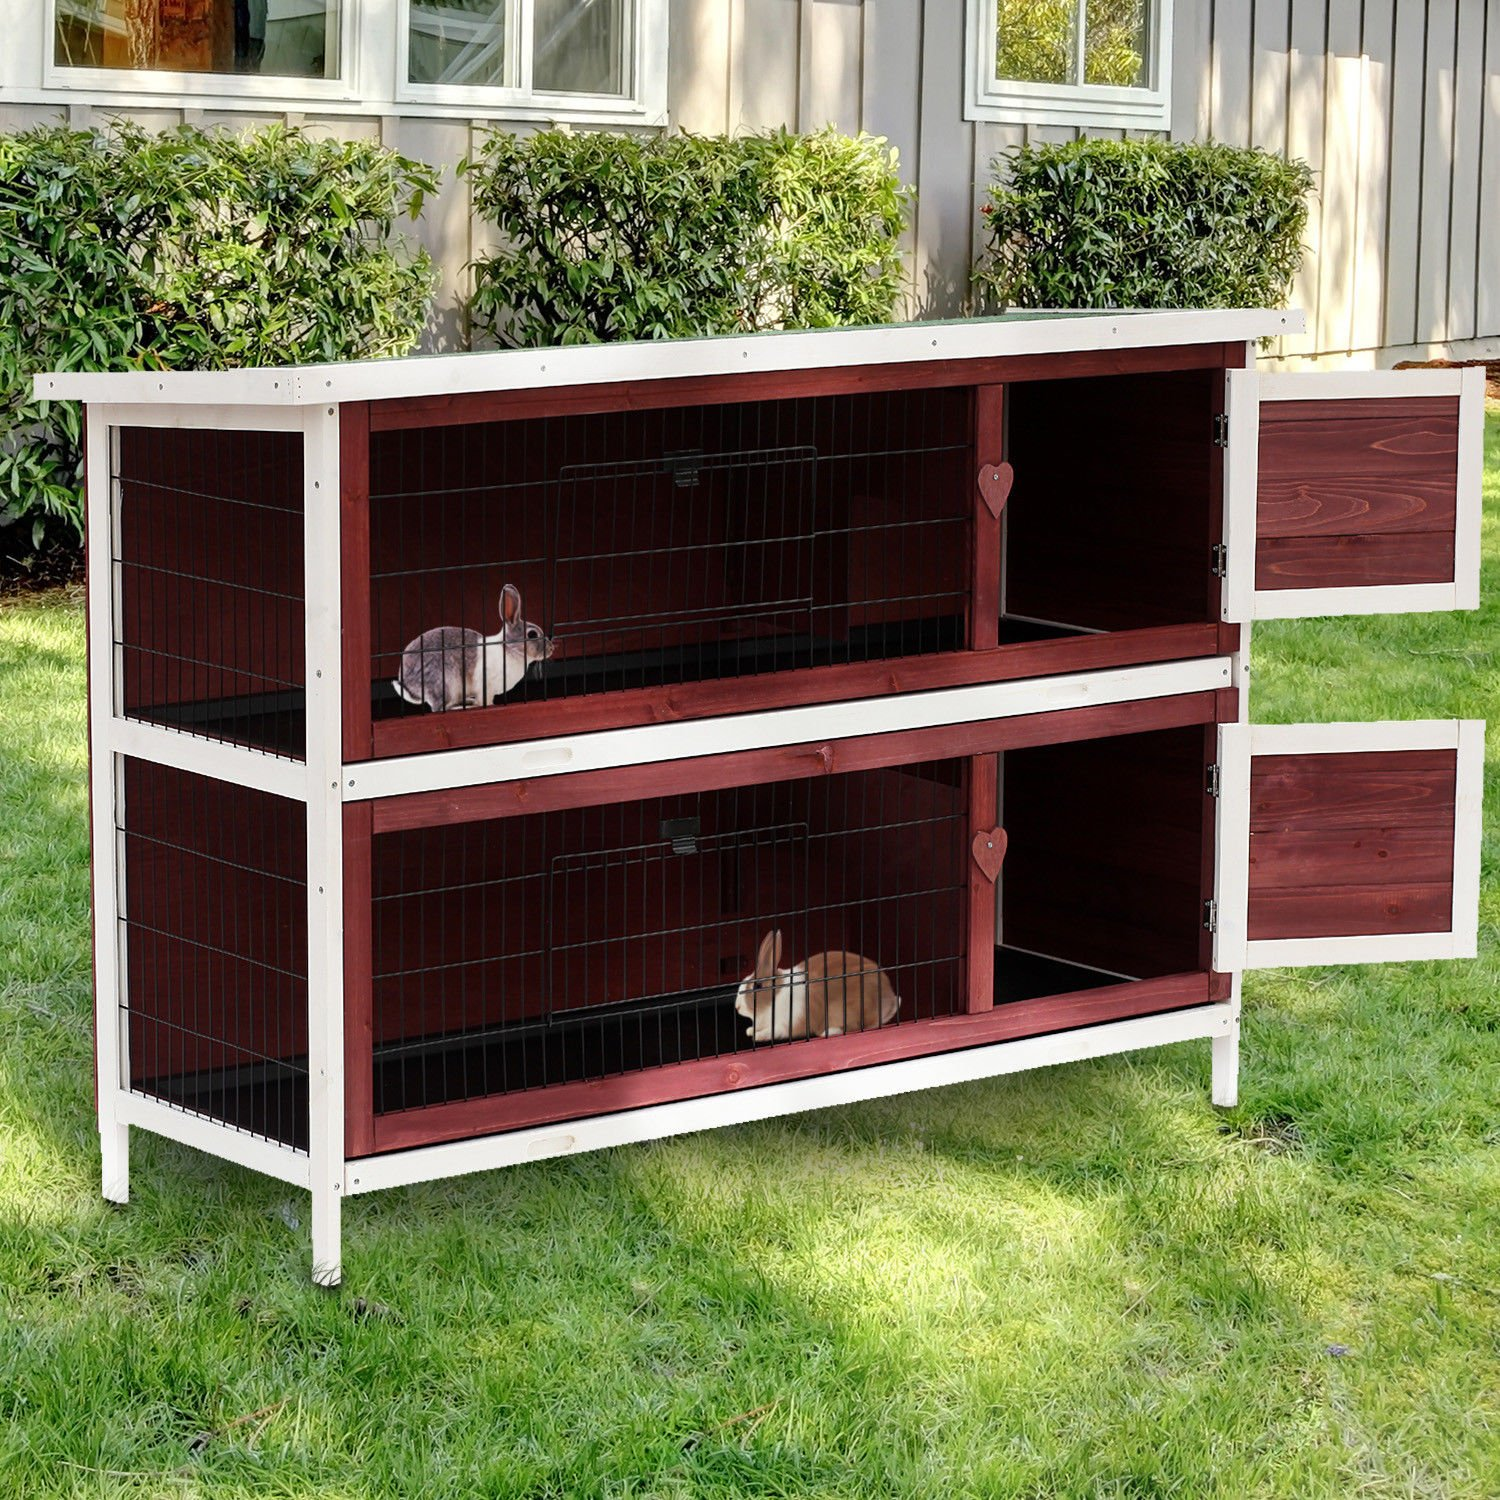 PawHut 54'' 2-Story Weatherproof Stackable Elevated Wooden Rabbit Hutch with Enclosed Run and Pull-Out Trays by PawHut (Image #2)